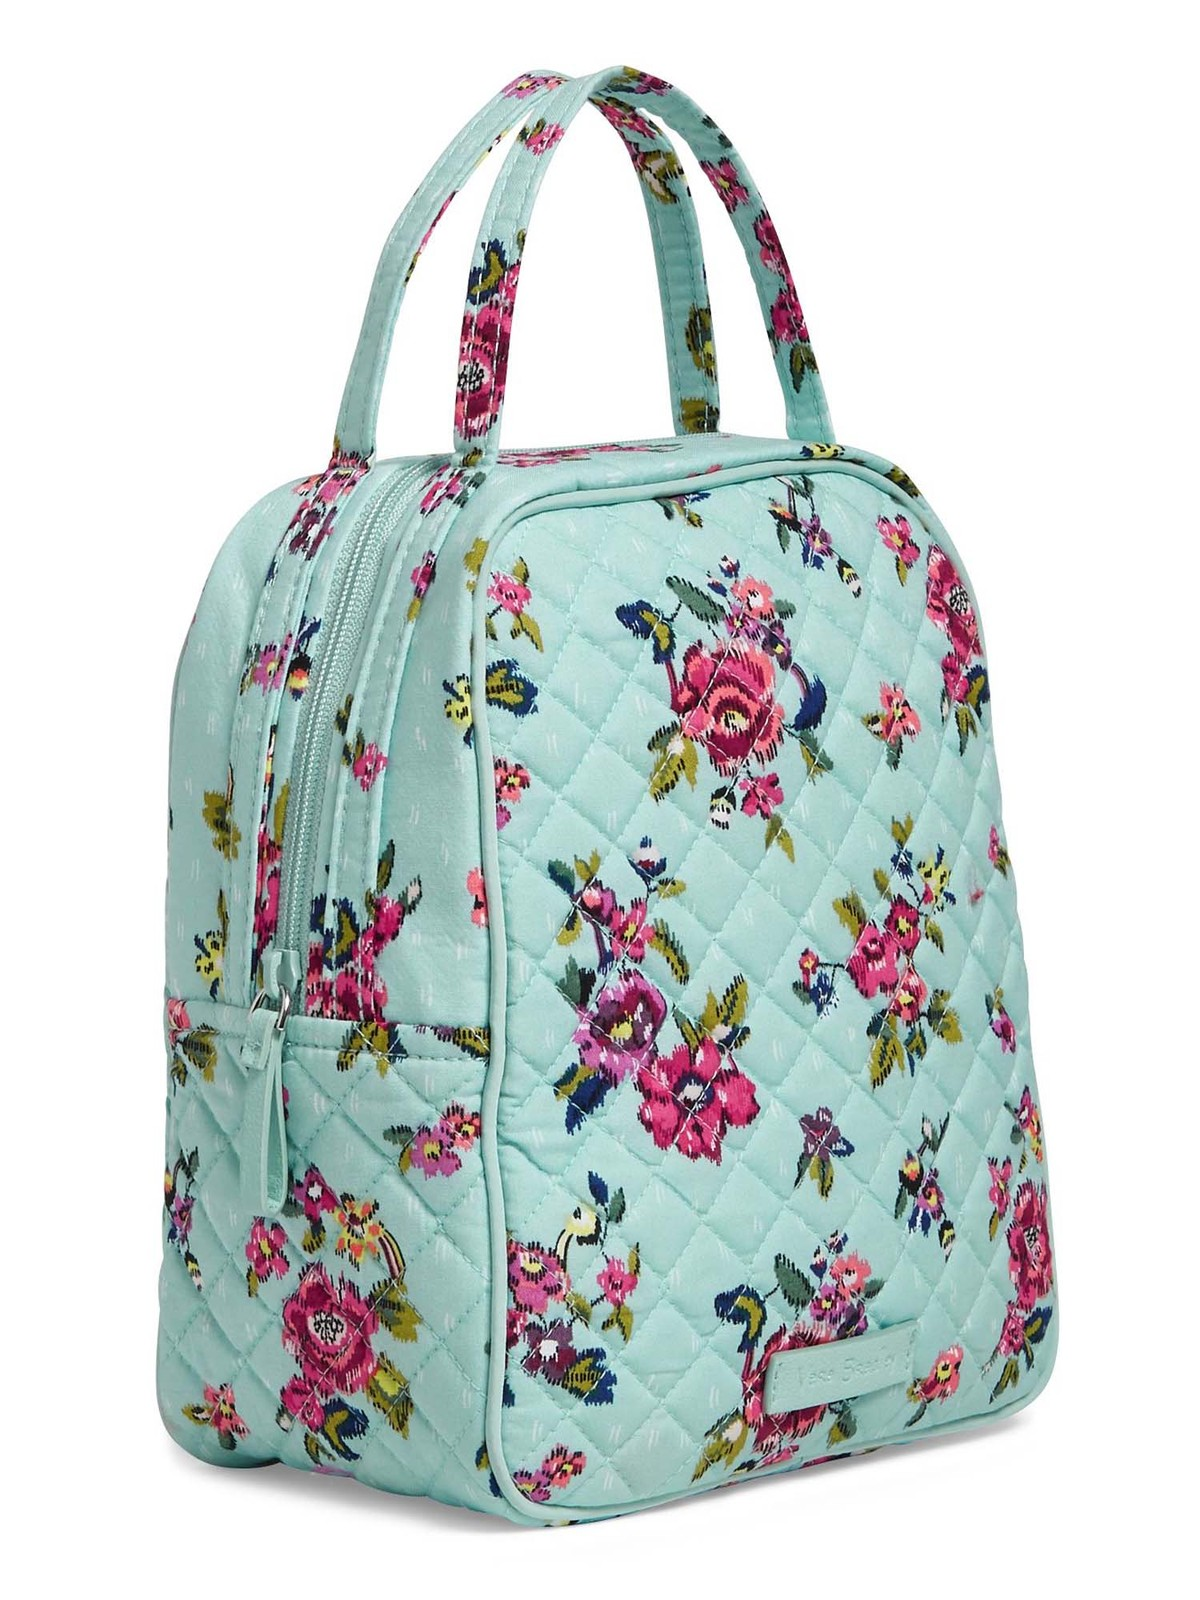 Vera Bradley Quilted Signature Cotton Iconic Lunch Bunch Bag, Water Bouquet